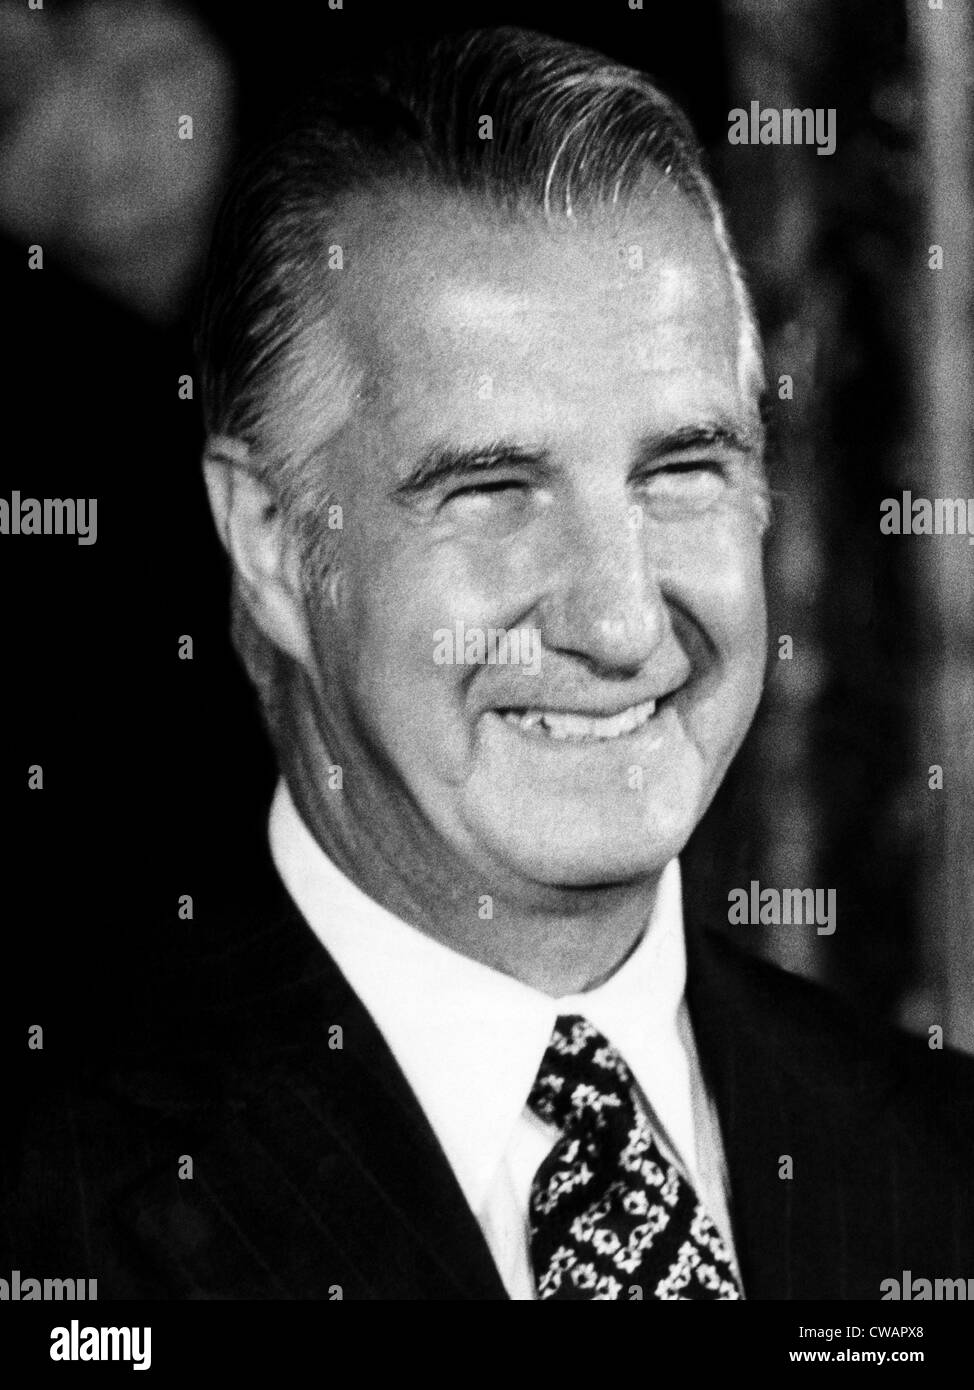 Vice President Spiro Agnew, 1973. Courtesy: CSU Archives/Everett Collection - Stock Image